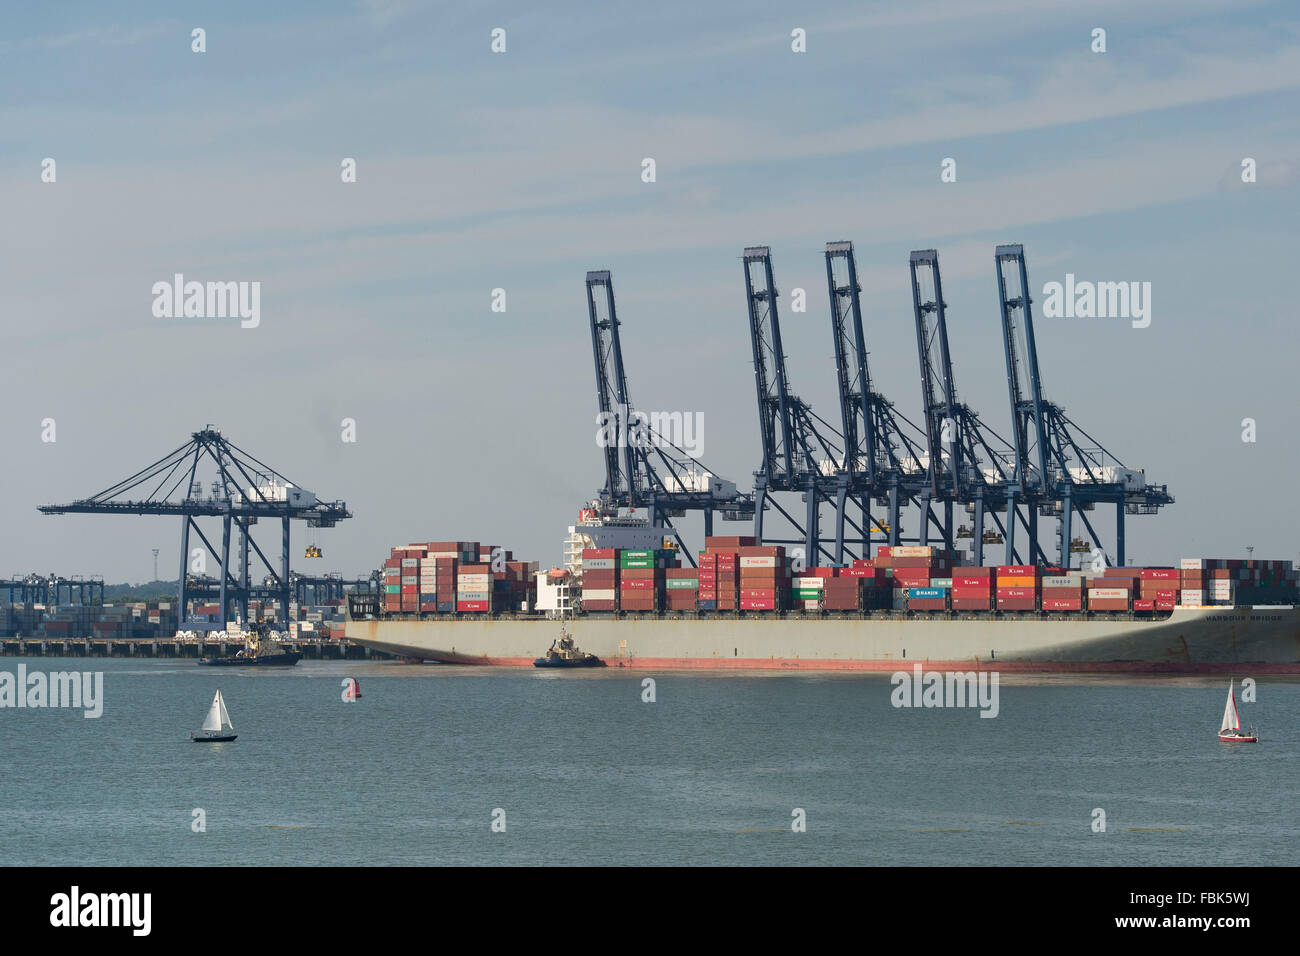 A container ship docked at the Port of Felixstowe in England, UK. - Stock Image